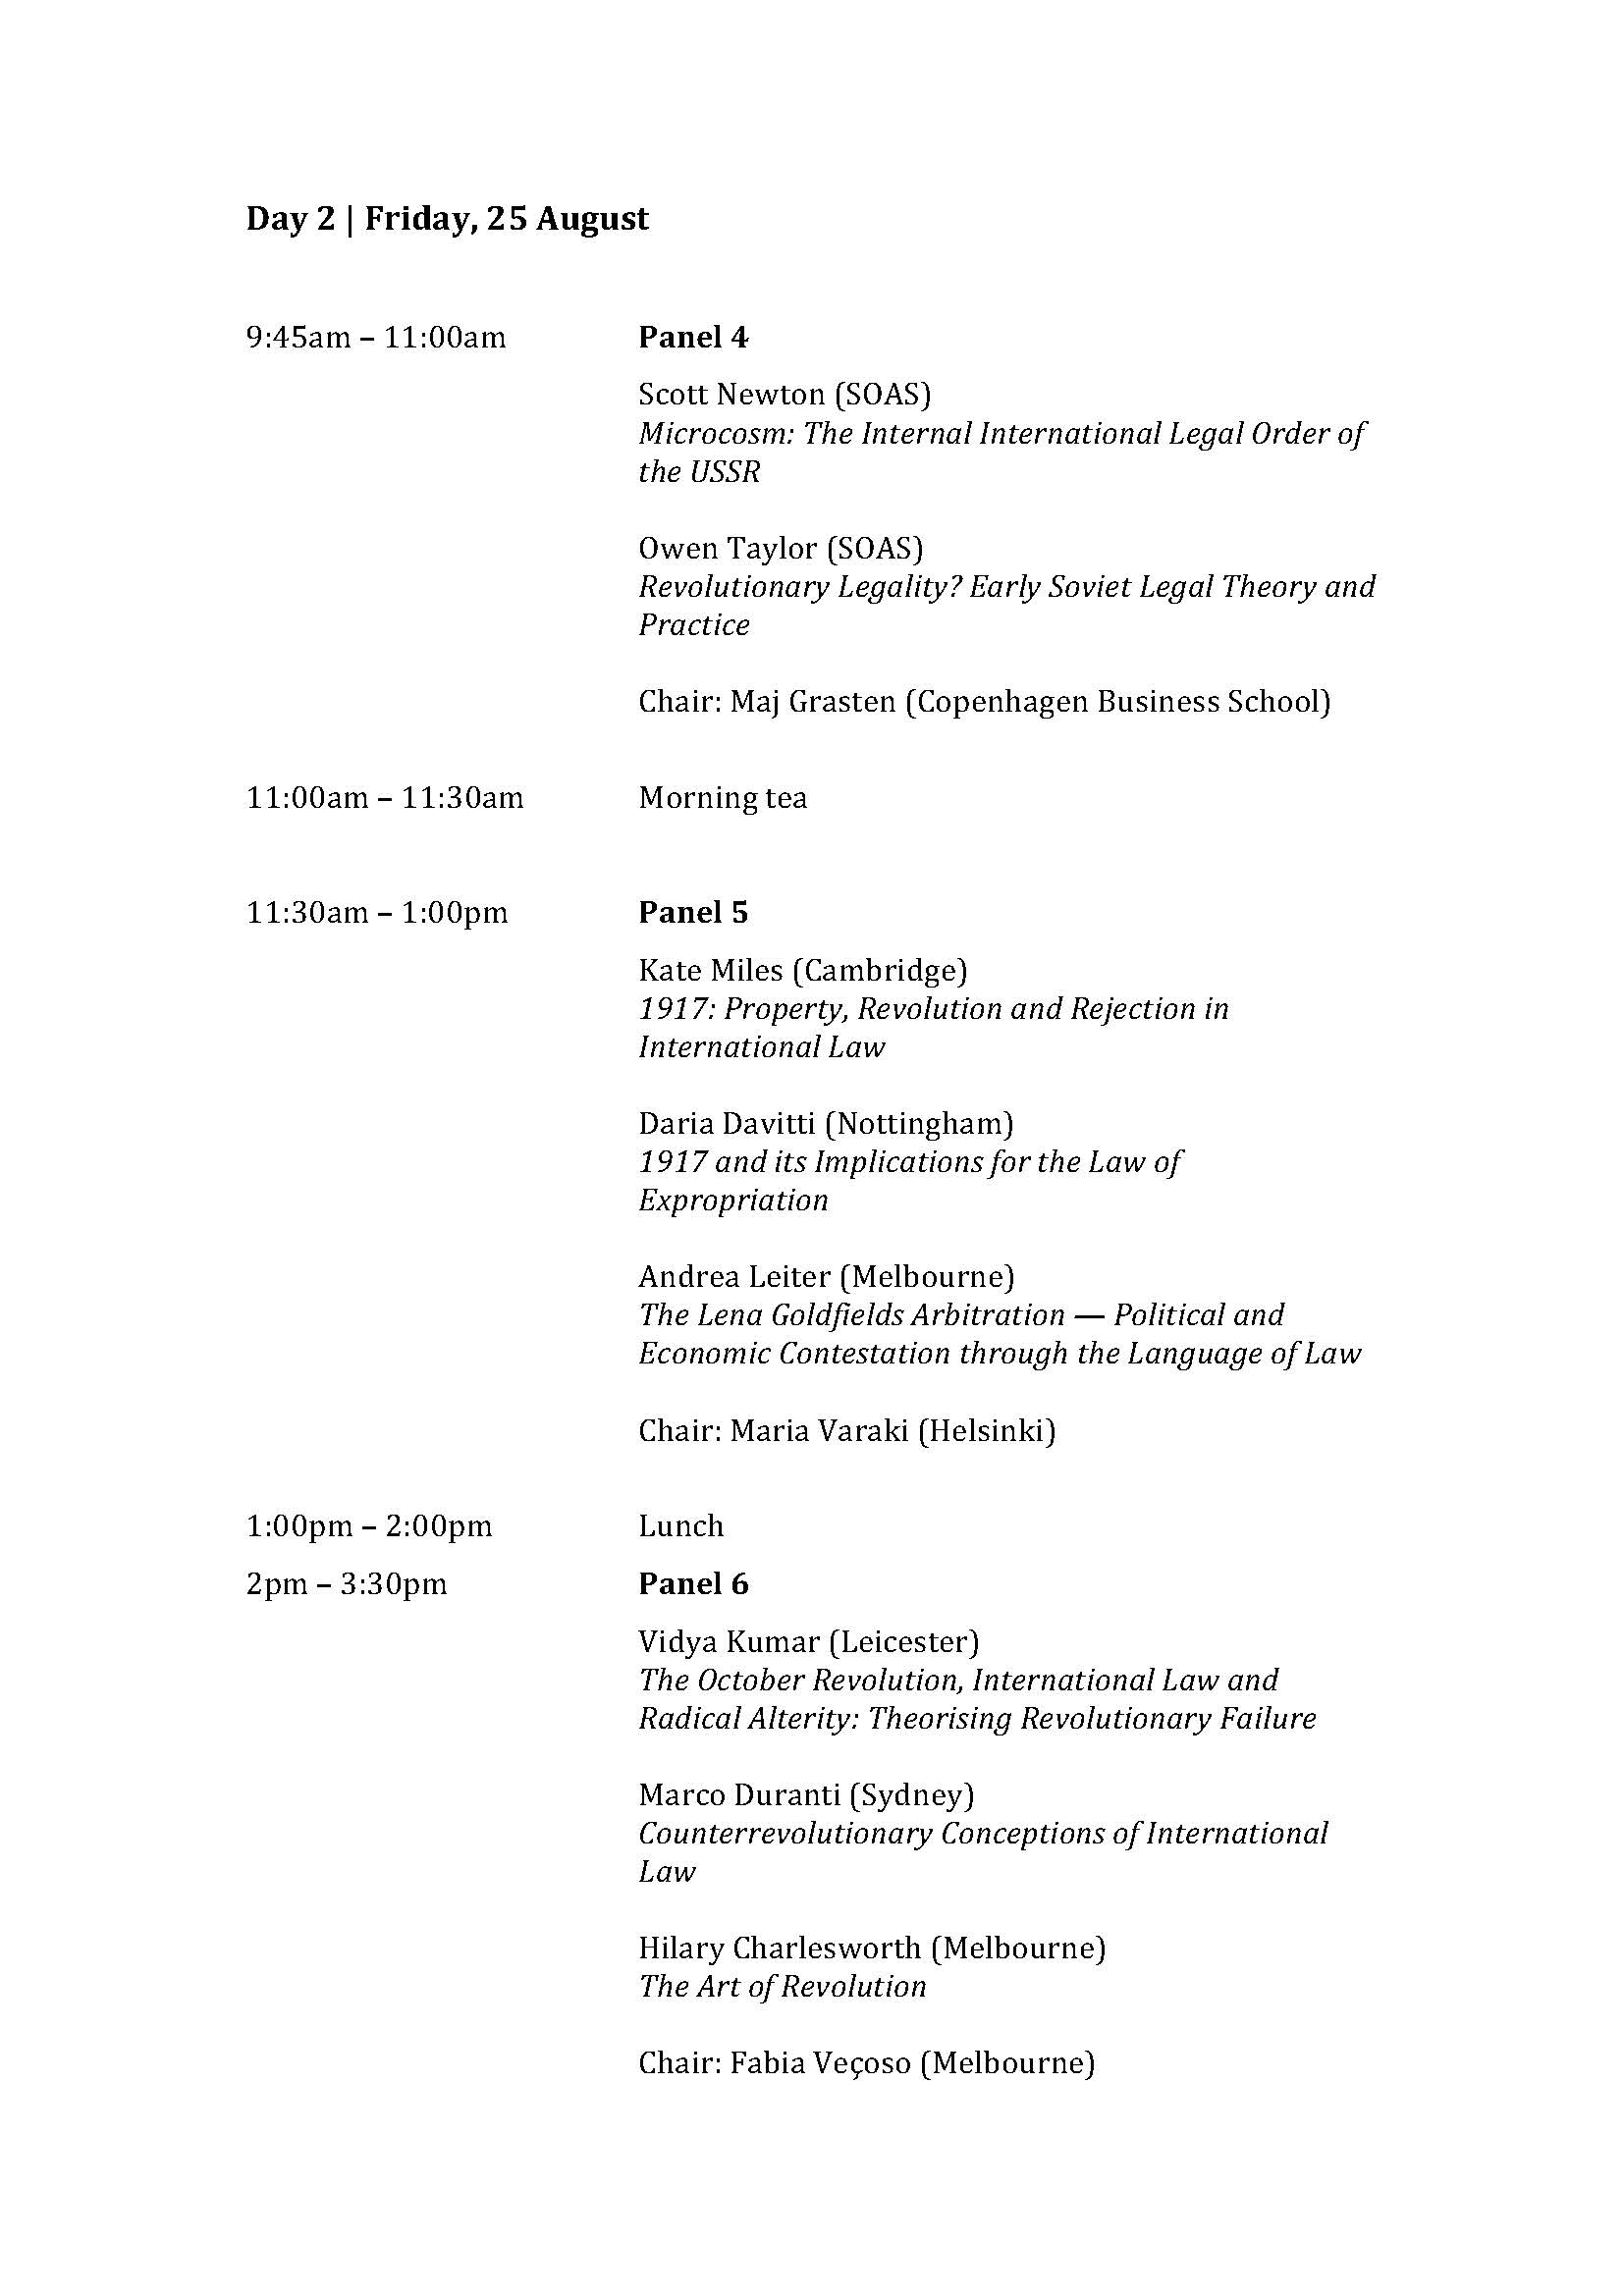 Revolutions conference - final final programme_Page_3.jpg